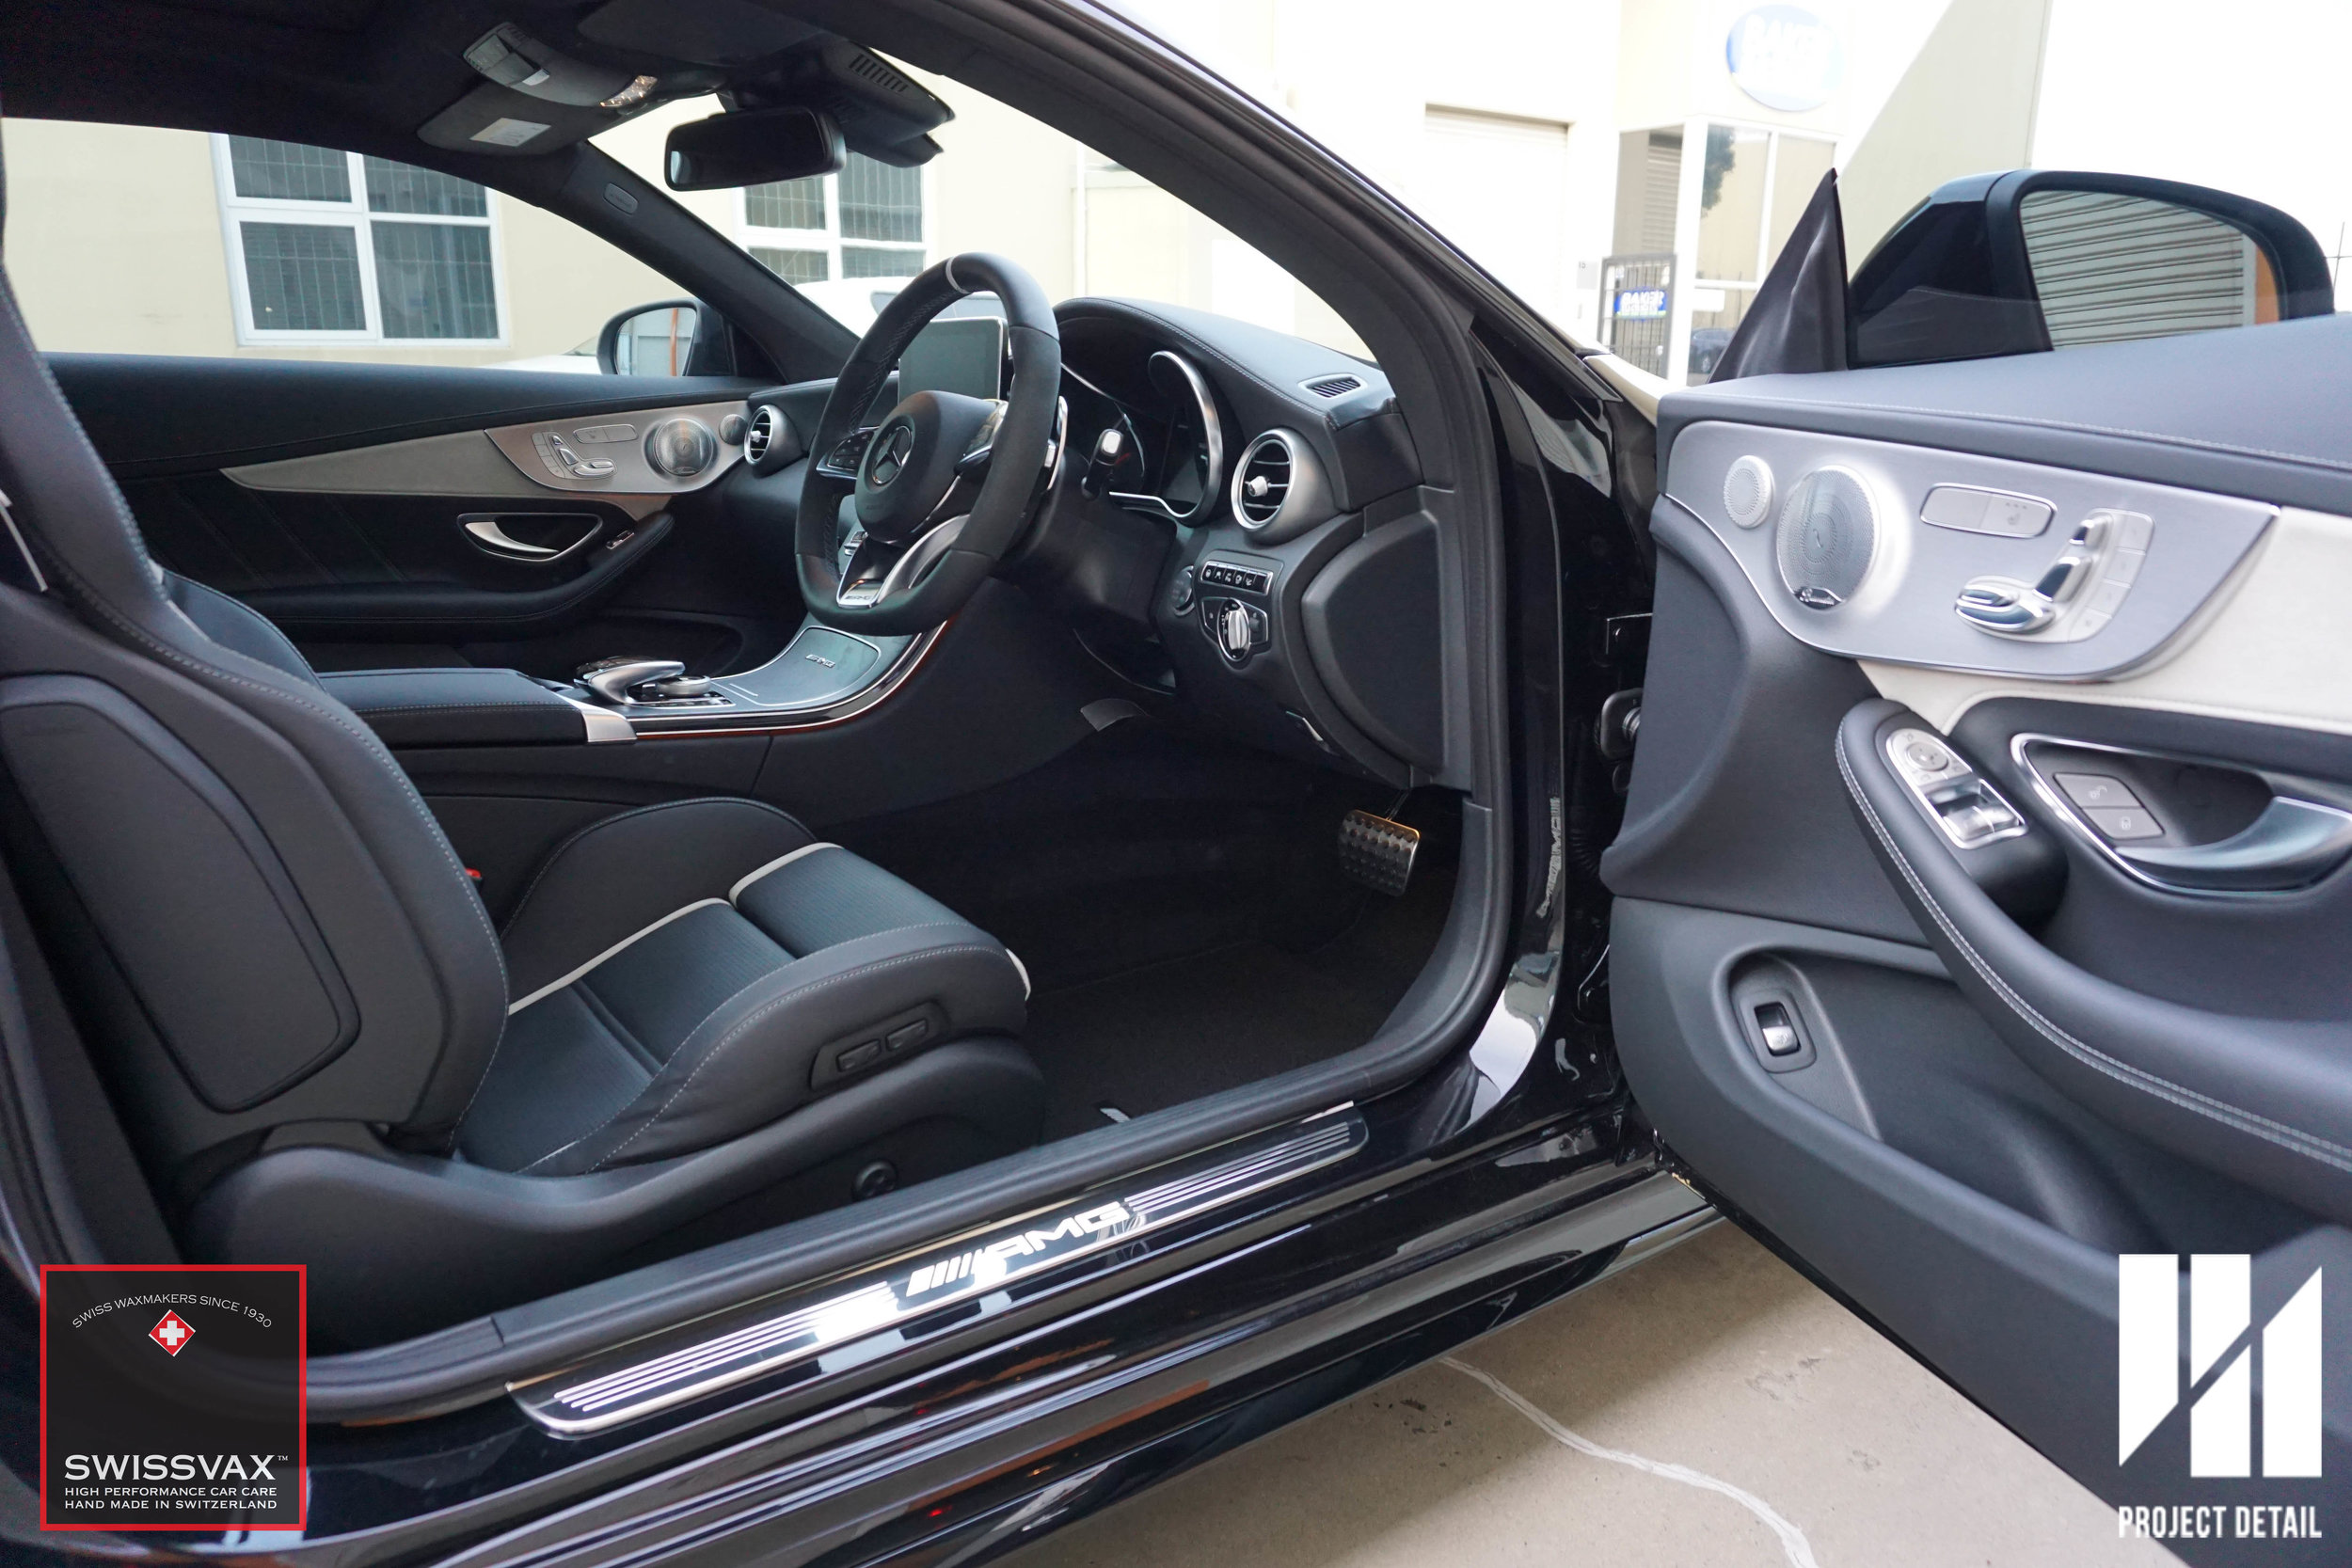 Project Detail also provides the very best in leather, fabric and interior car with Swissvax.